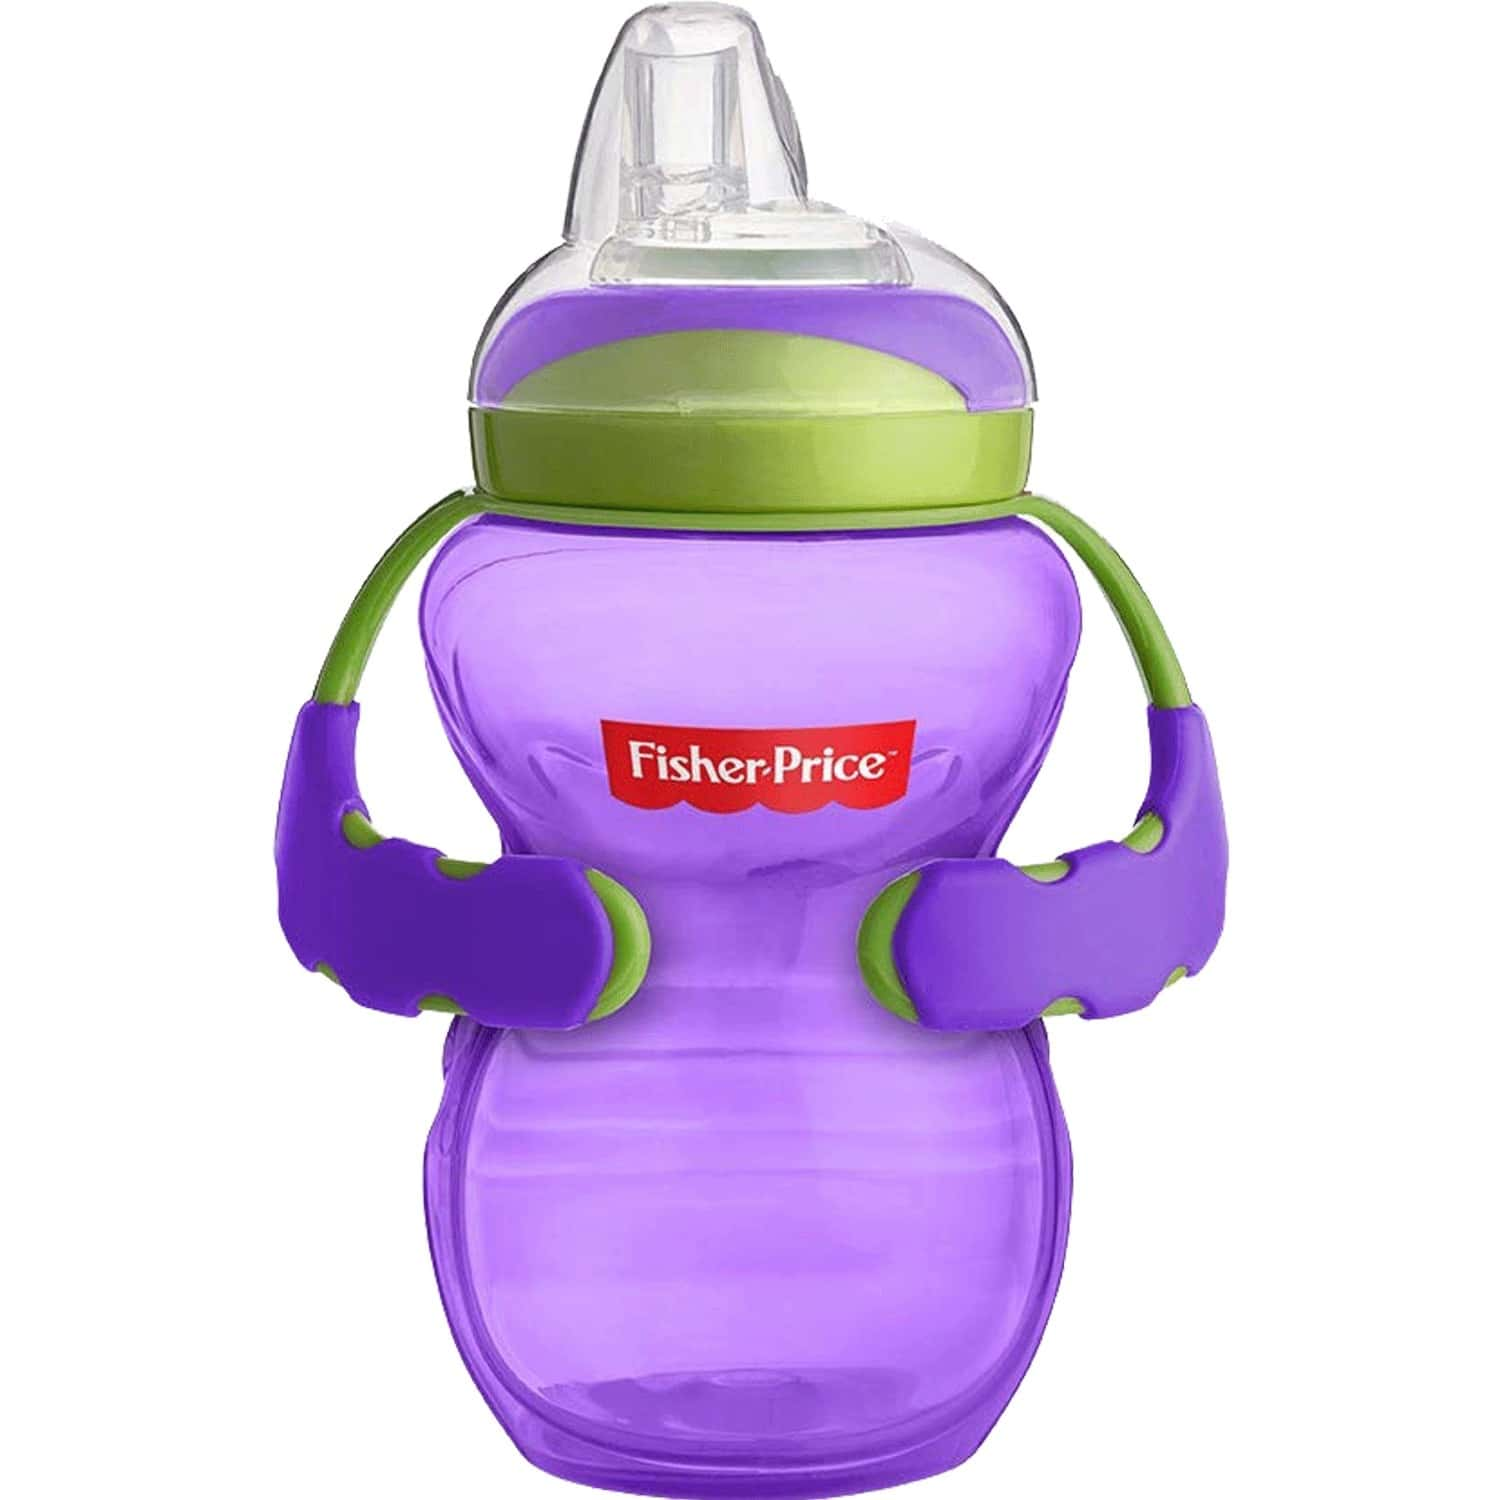 Fisher Price Spout Sippy Cup For Babies, 6m+, 10 Oz/ 300ml Purple